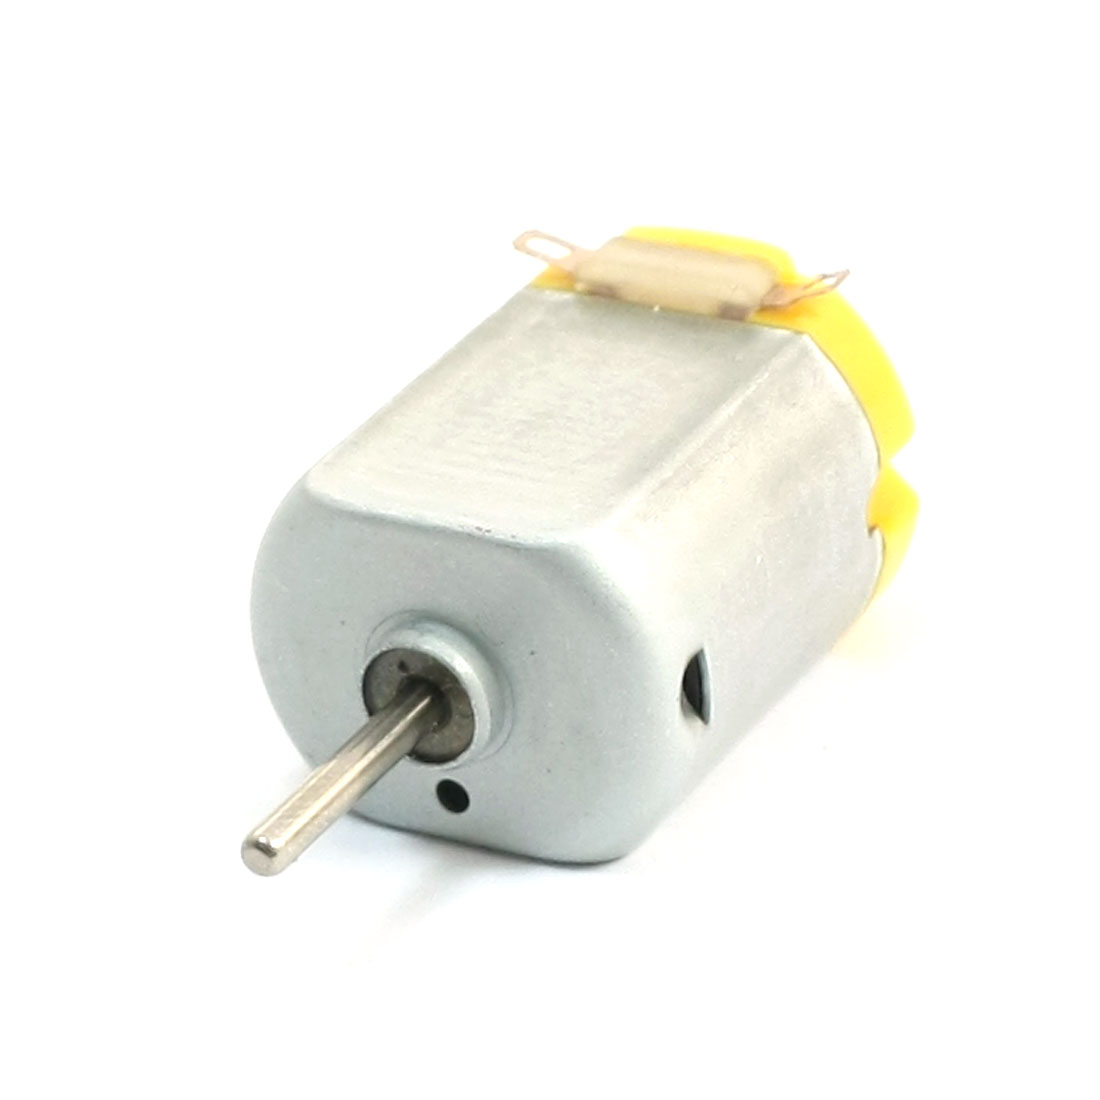 DC 6-9V 2mm Dia Shaft 12000RPM Output Rotary Micro Electric Motor